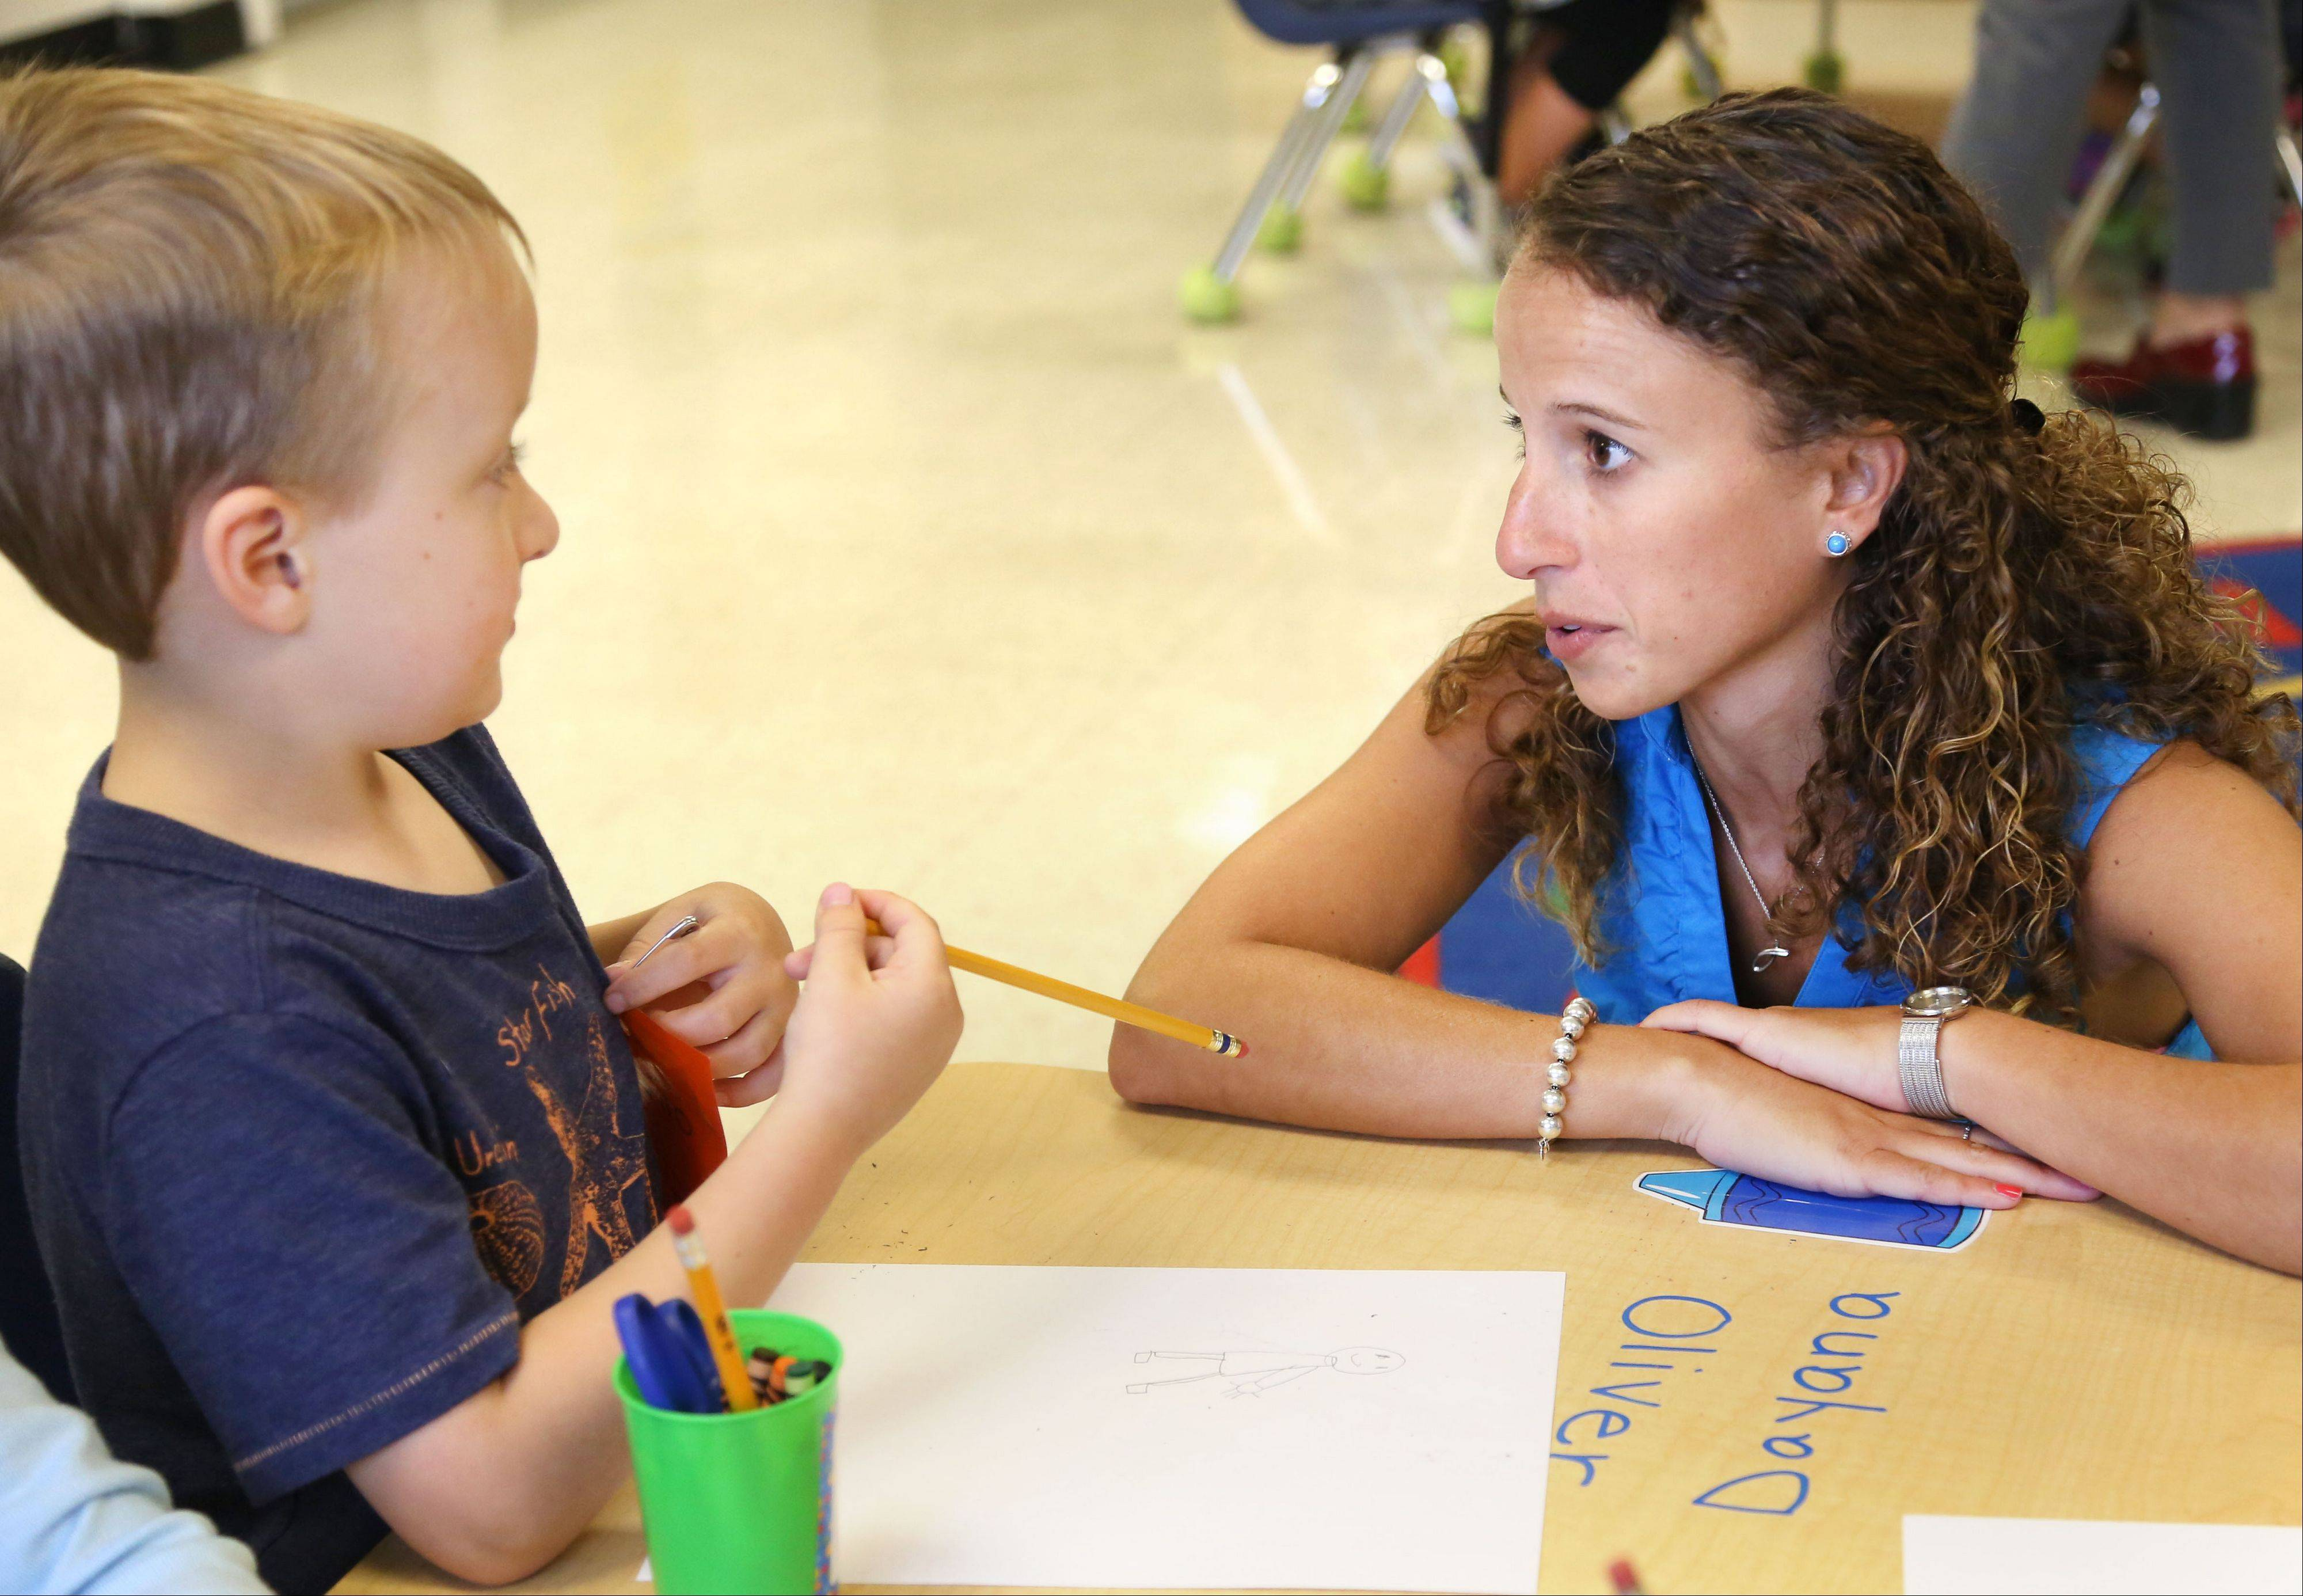 Kindergarten teacher Julie Silverberg works with Oliver Van de Motter at Washington Elementary School in Mundelein. Silverberg and teachers throughout the suburbs are implementing the new Common Core State Standards by teaching kids how to be more critical thinkers.